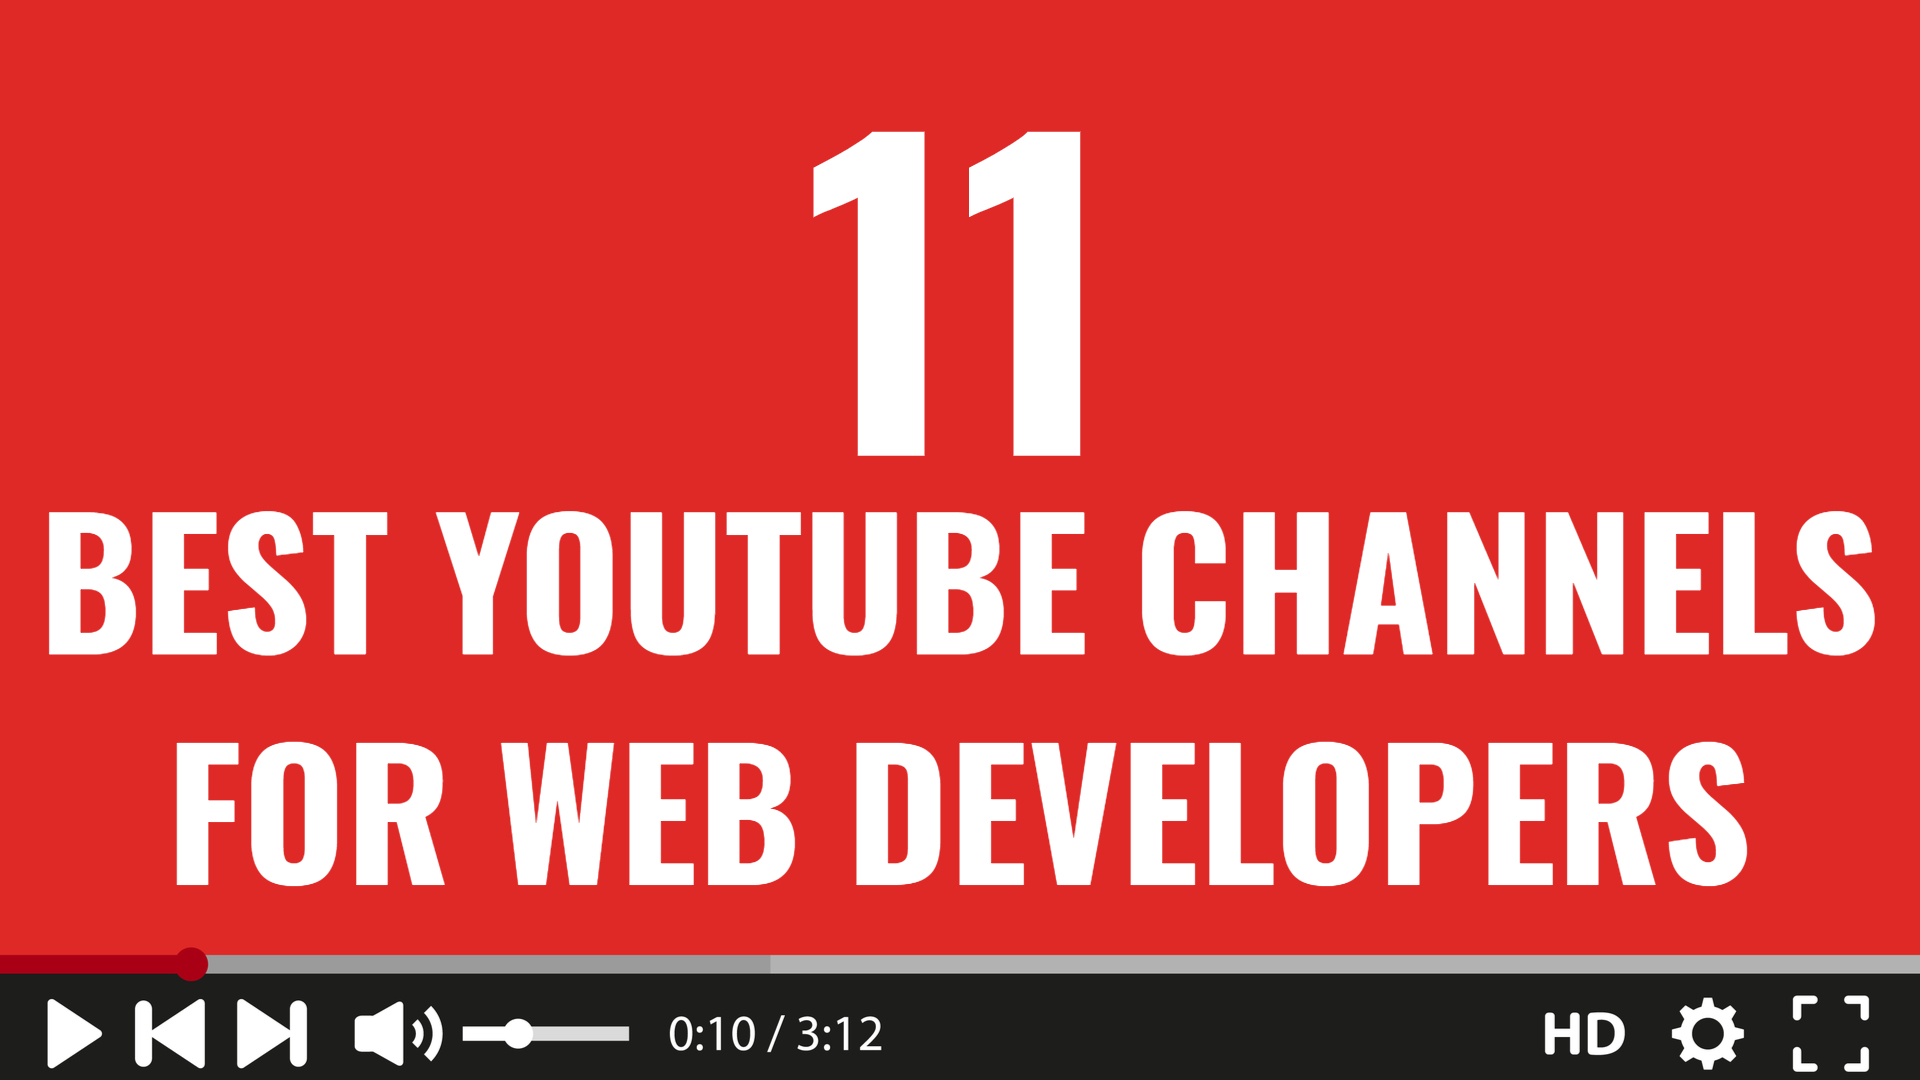 11 Best YouTube Channels For Web Developers - Invent With Code